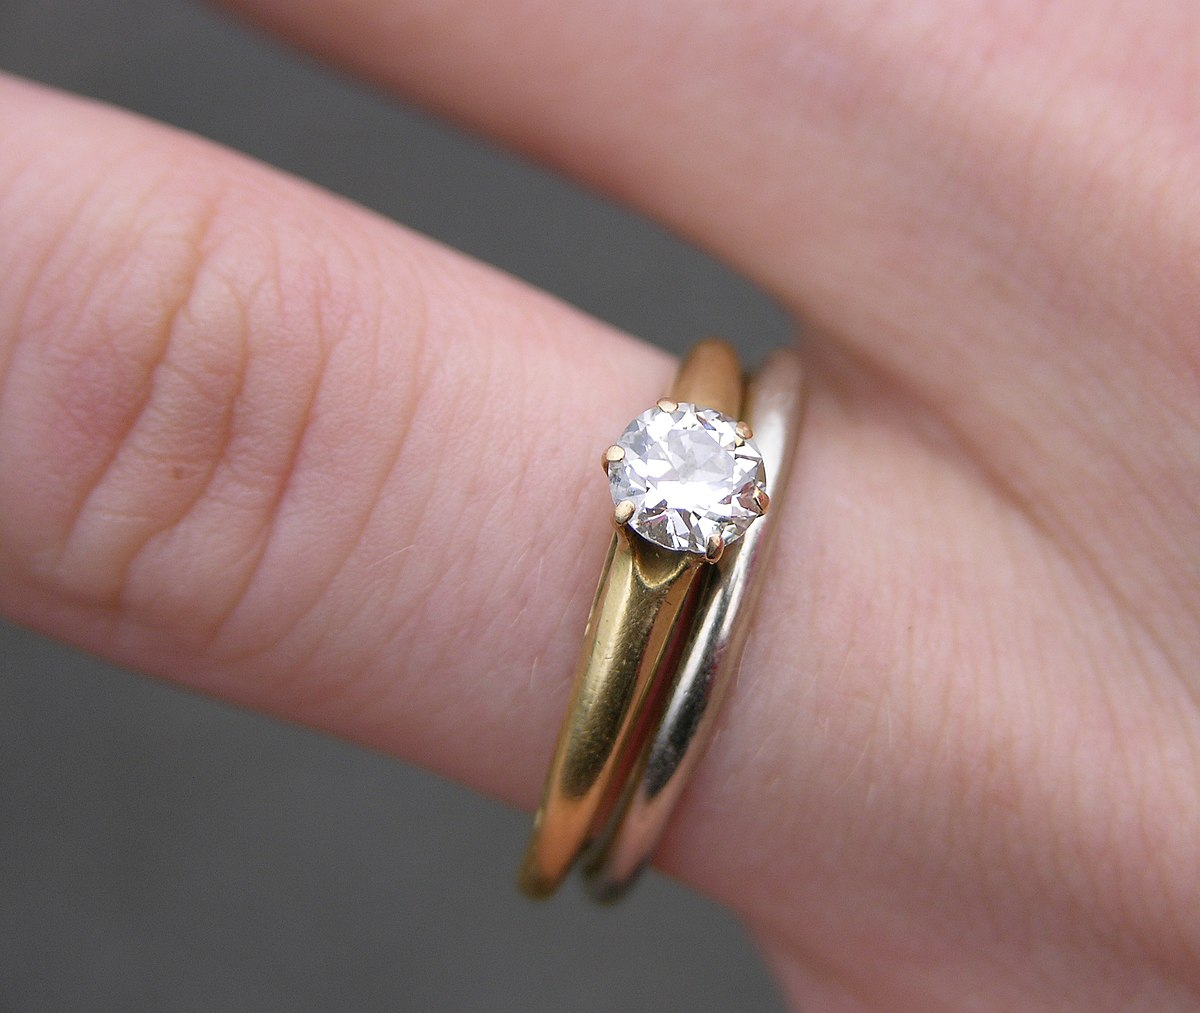 Engagement ring wedding rings